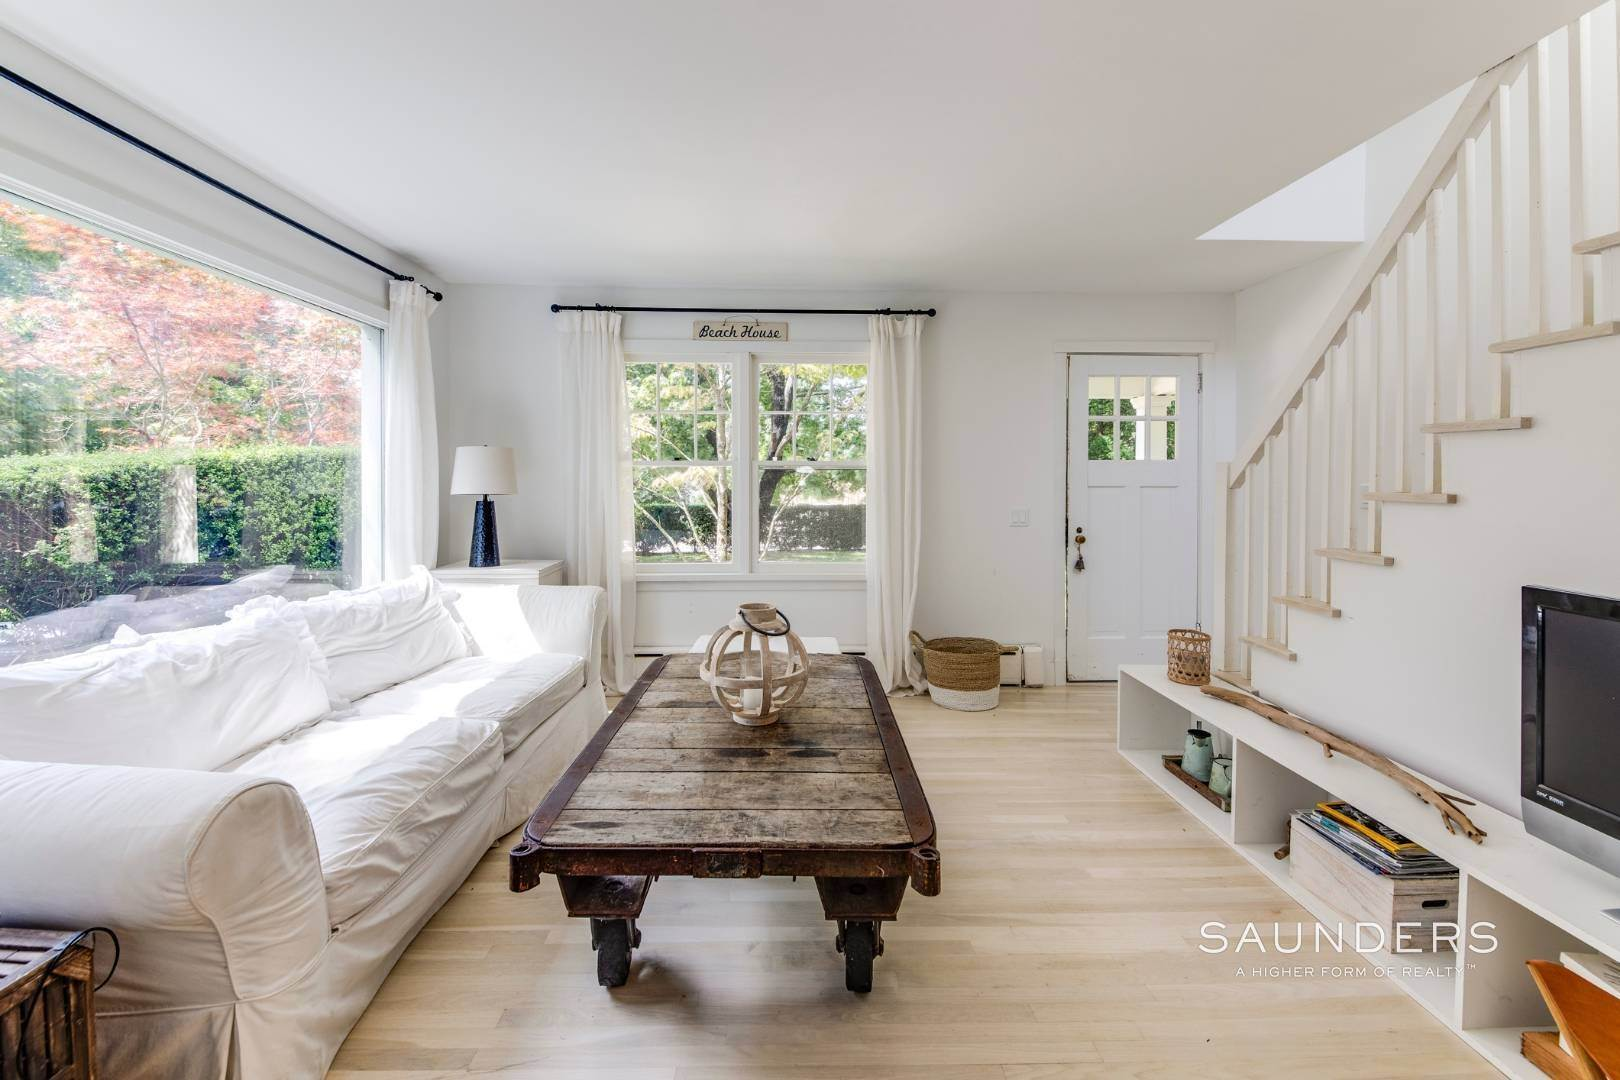 6. Single Family Homes for Sale at South Of Highway - Turnkey Charmer 136 Cove Hollow Road, East Hampton, East Hampton Town, NY 11937